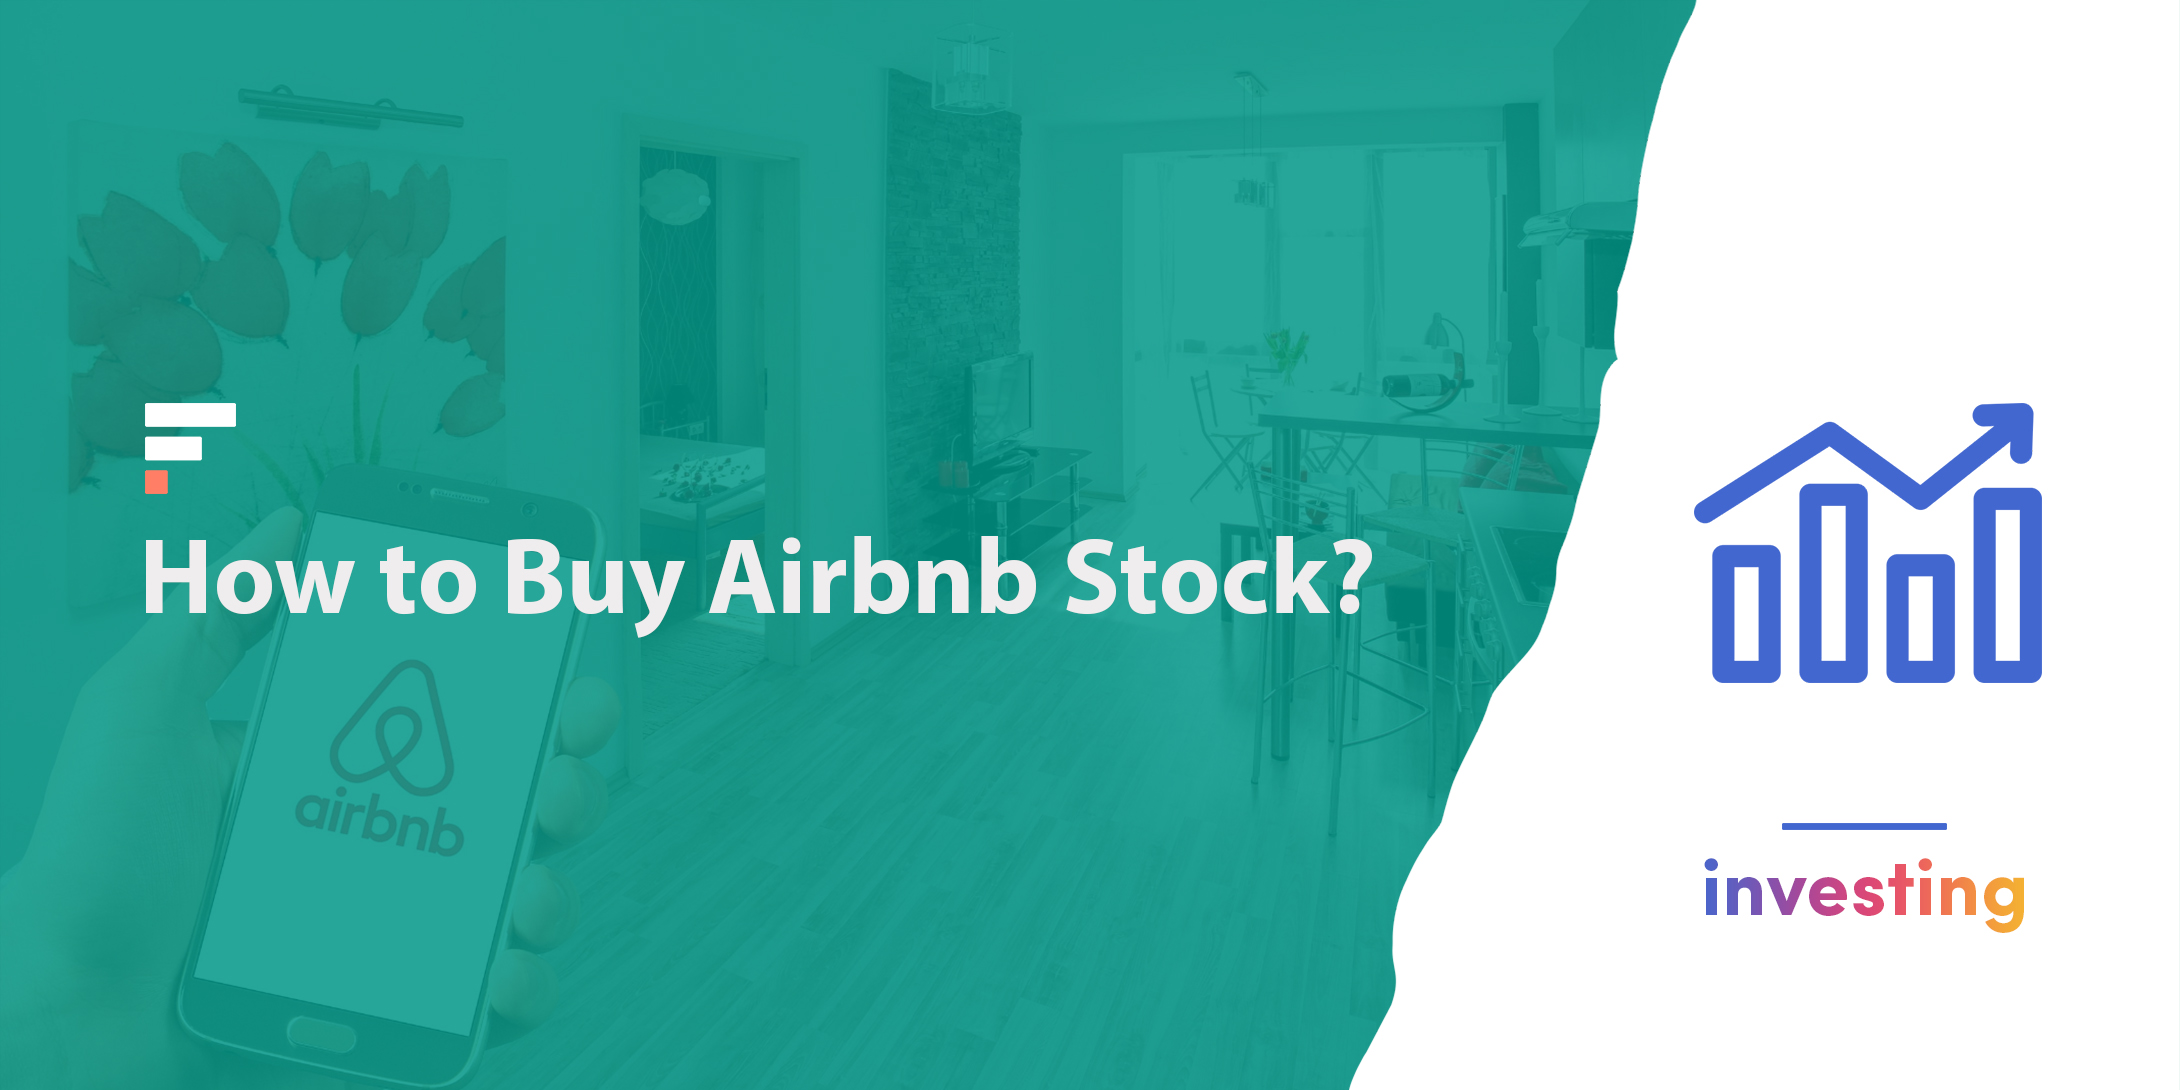 How buy Airbnb stock?